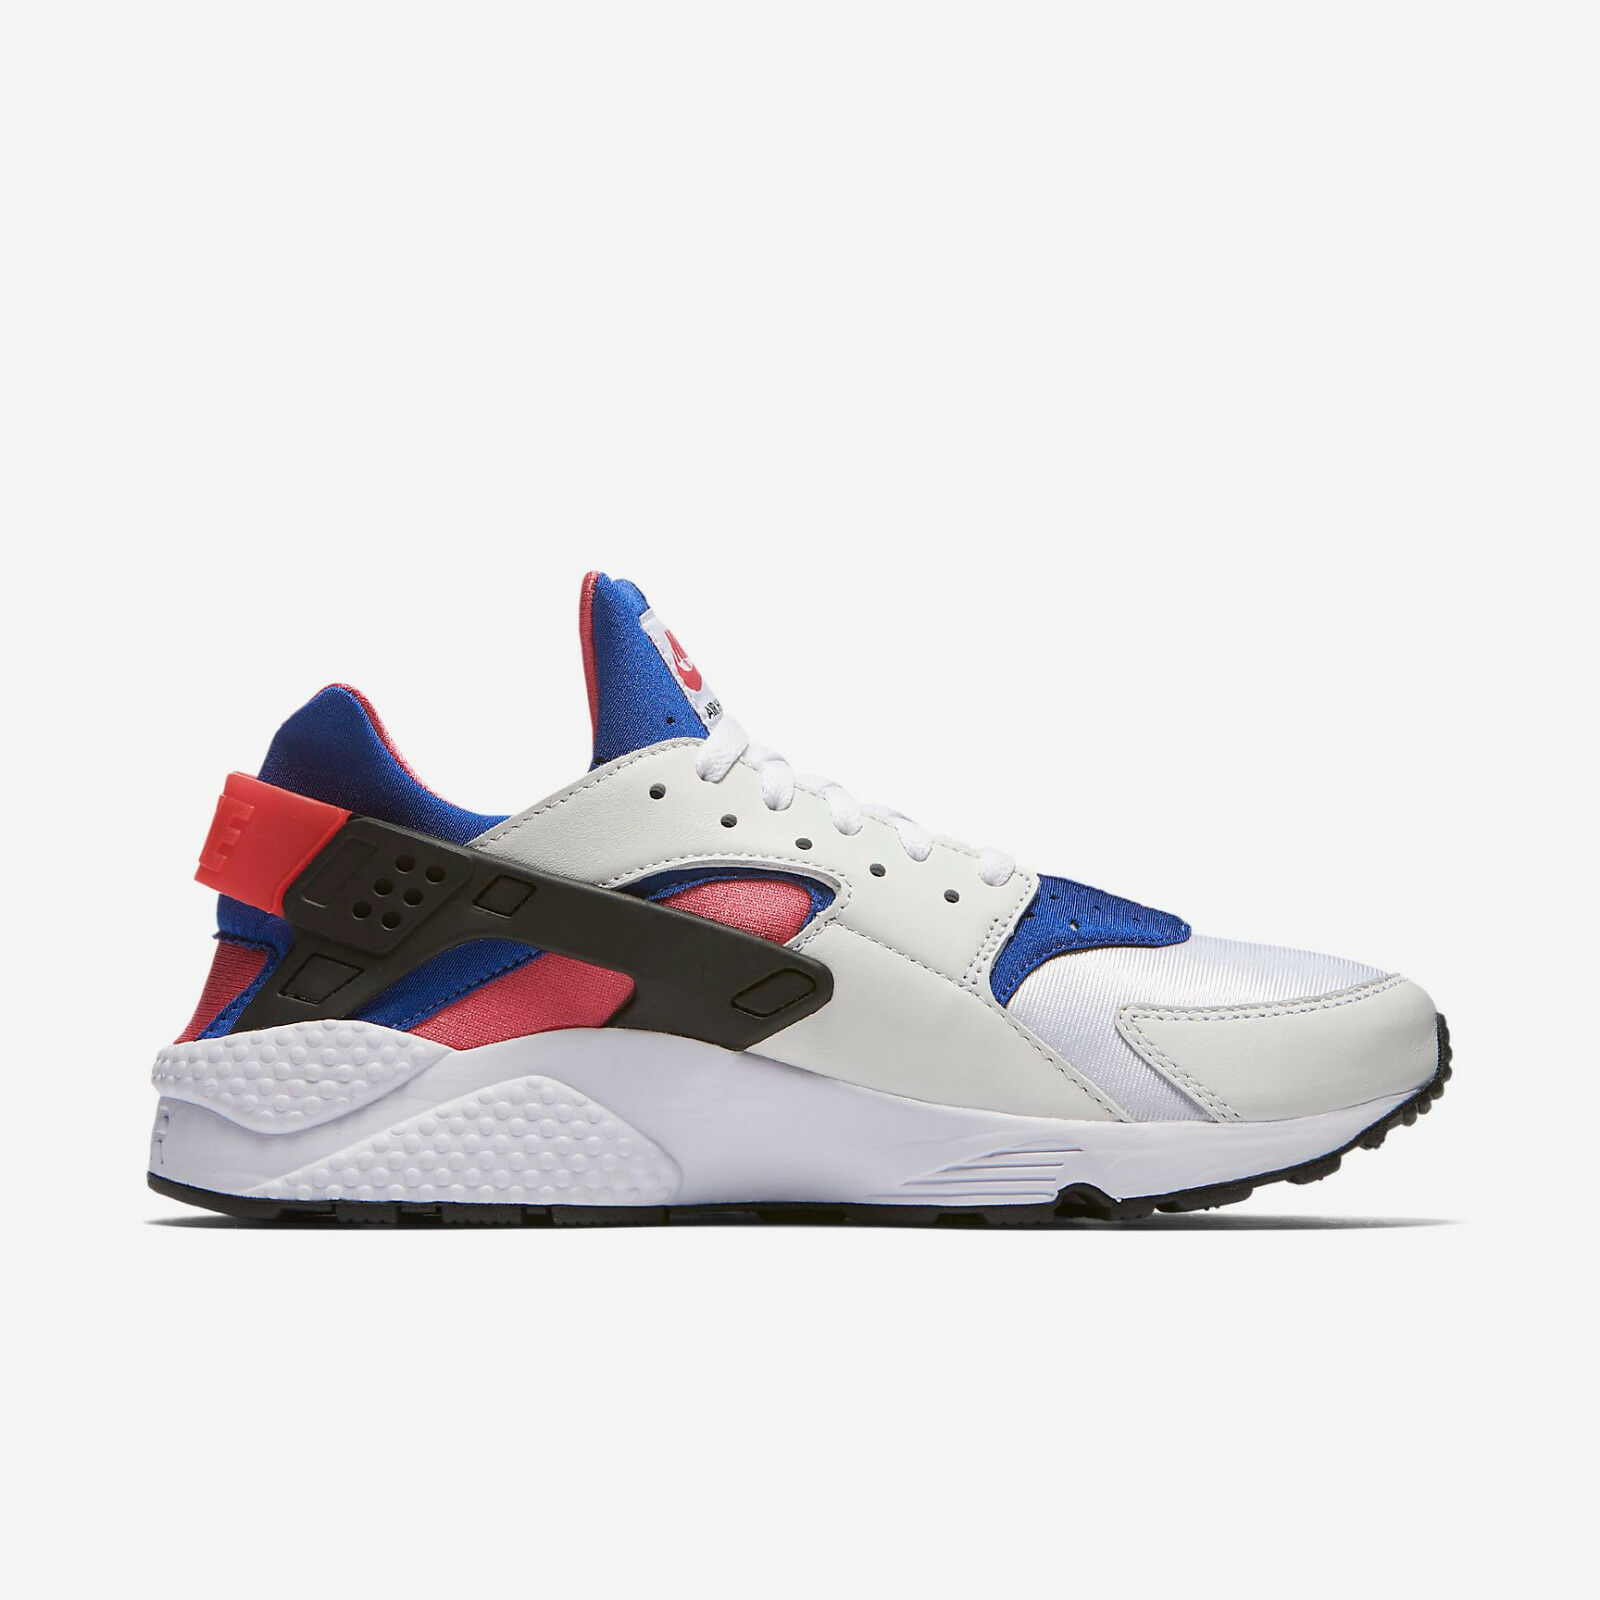 NIB NIKE Uomo 9 AIR HUARACHE RUN '91 QS AH8049 100 LIFESTYLE SHOES MSRP  130